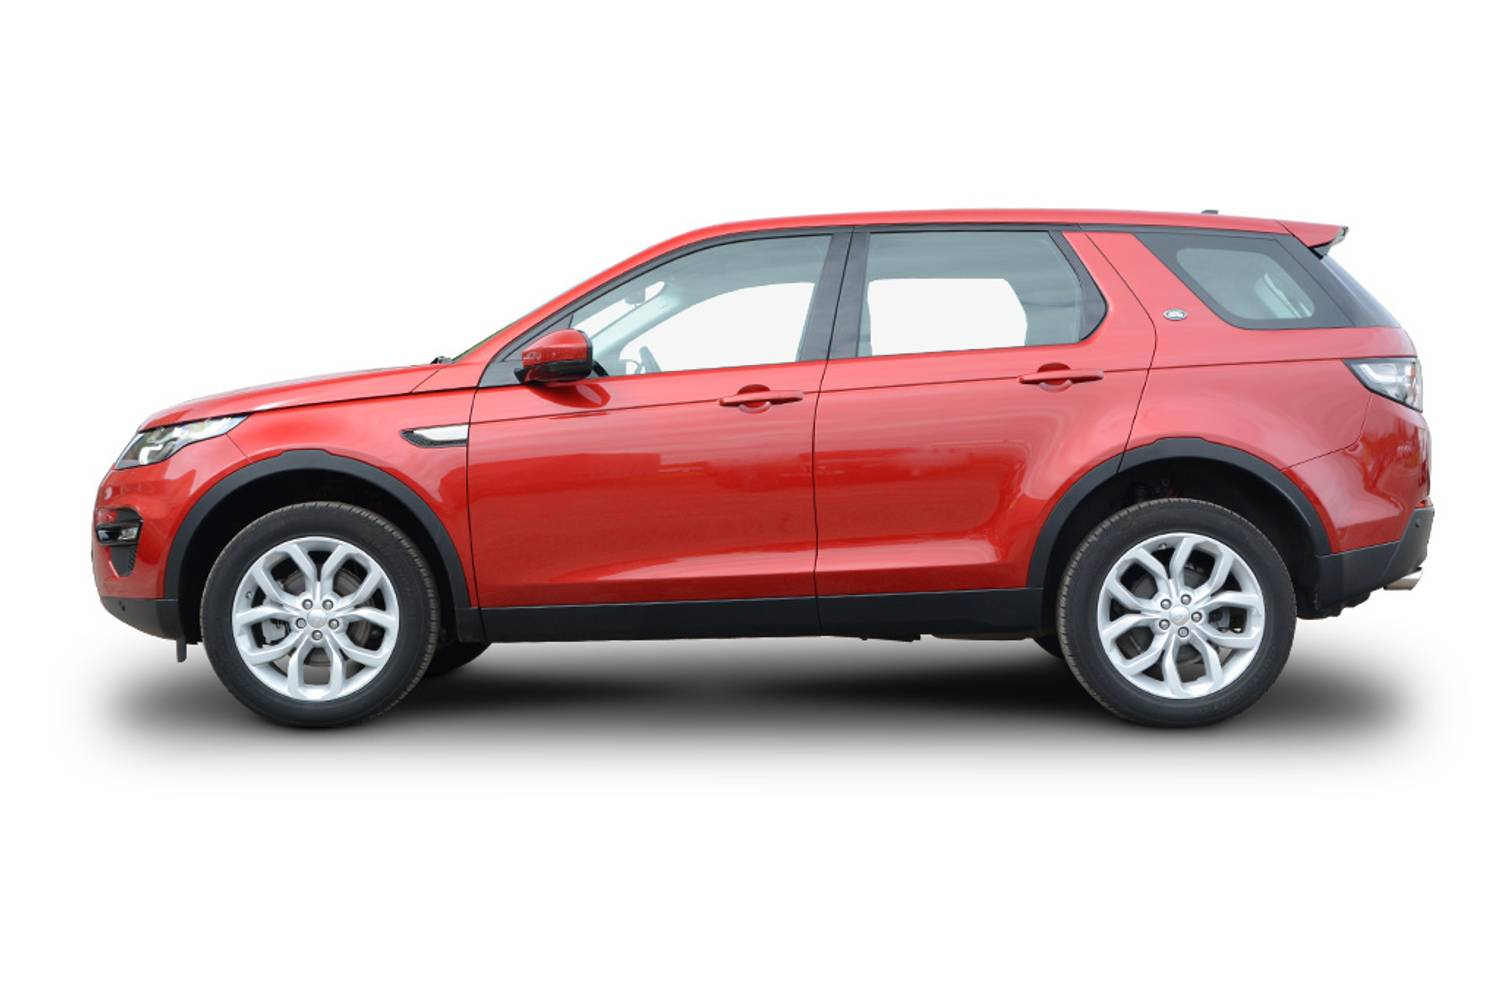 new land rover discovery sport sw special editions 2 0 td4 pure 5 door 5 seats 2017 for sale. Black Bedroom Furniture Sets. Home Design Ideas